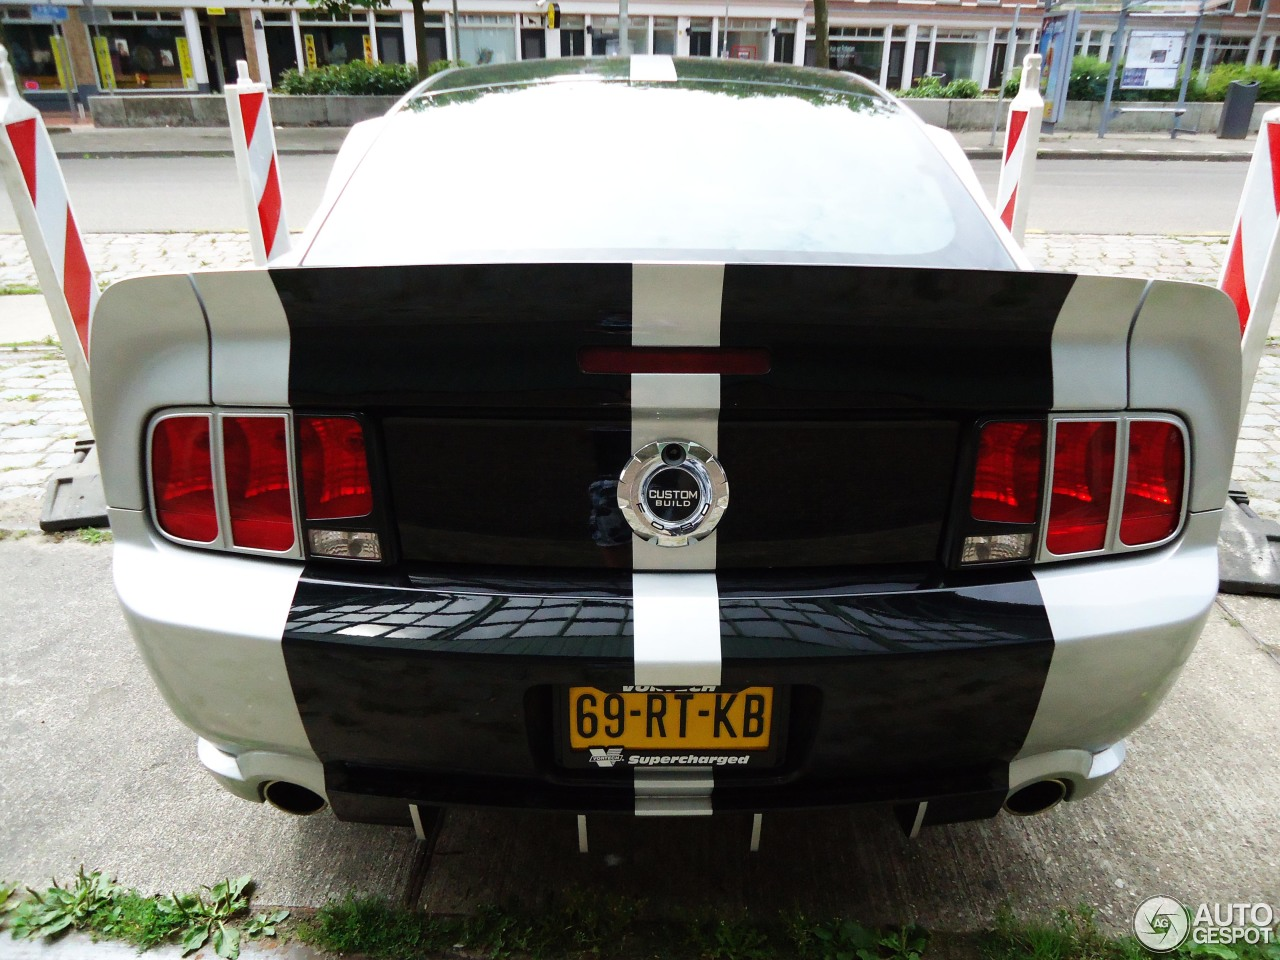 Ford Mustang GT Vortech Supercharged - 3 April 2012 - Autogespot